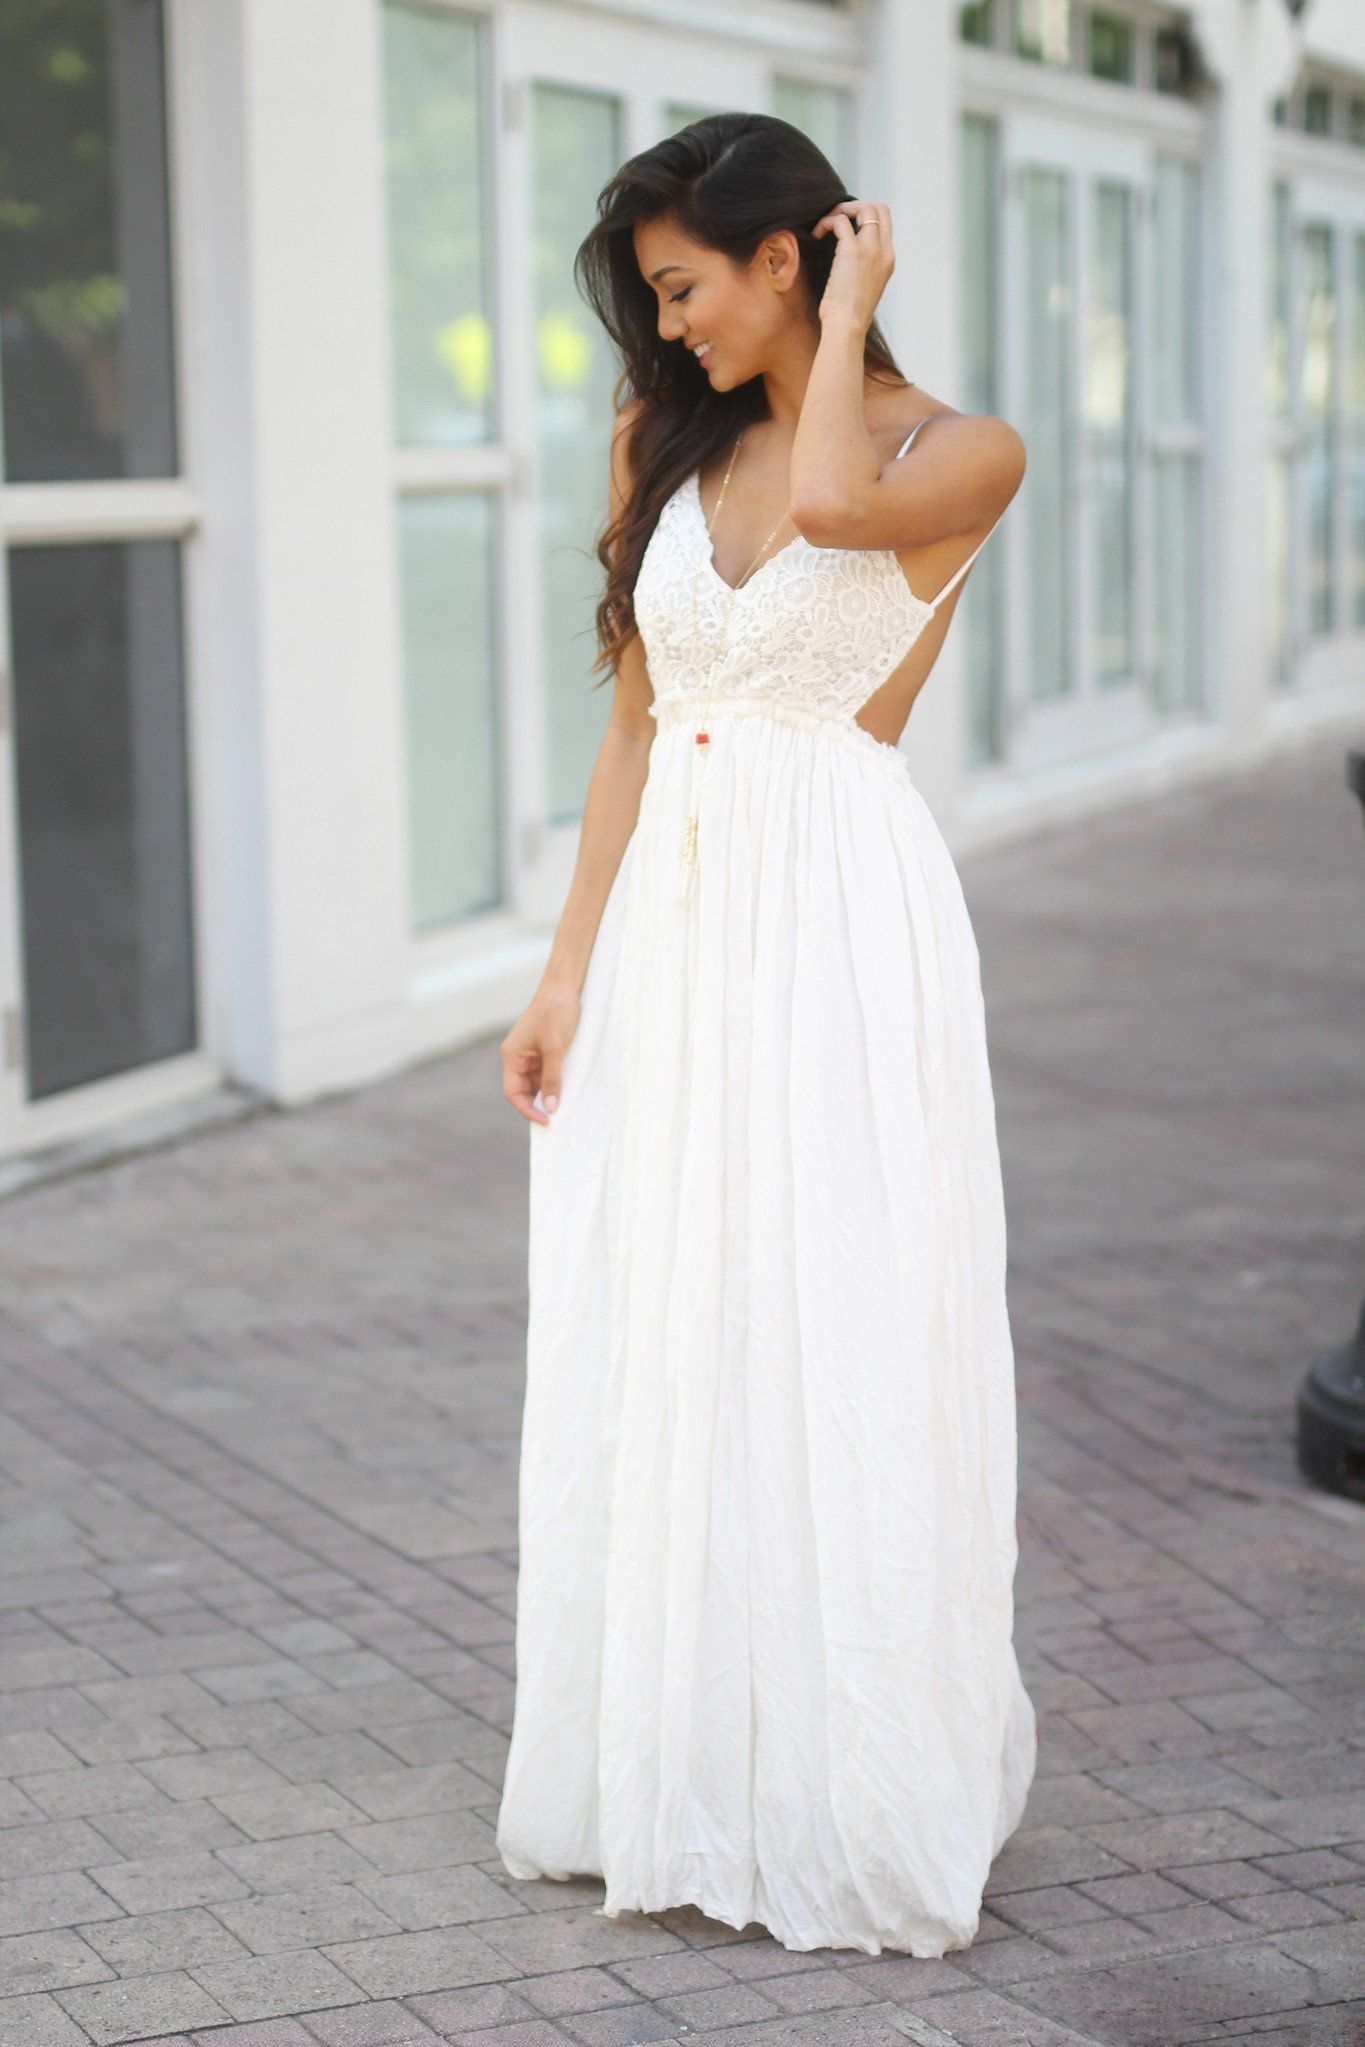 White Lace Maxi Dress with Open Back and Frayed Hem | Pinterest ...